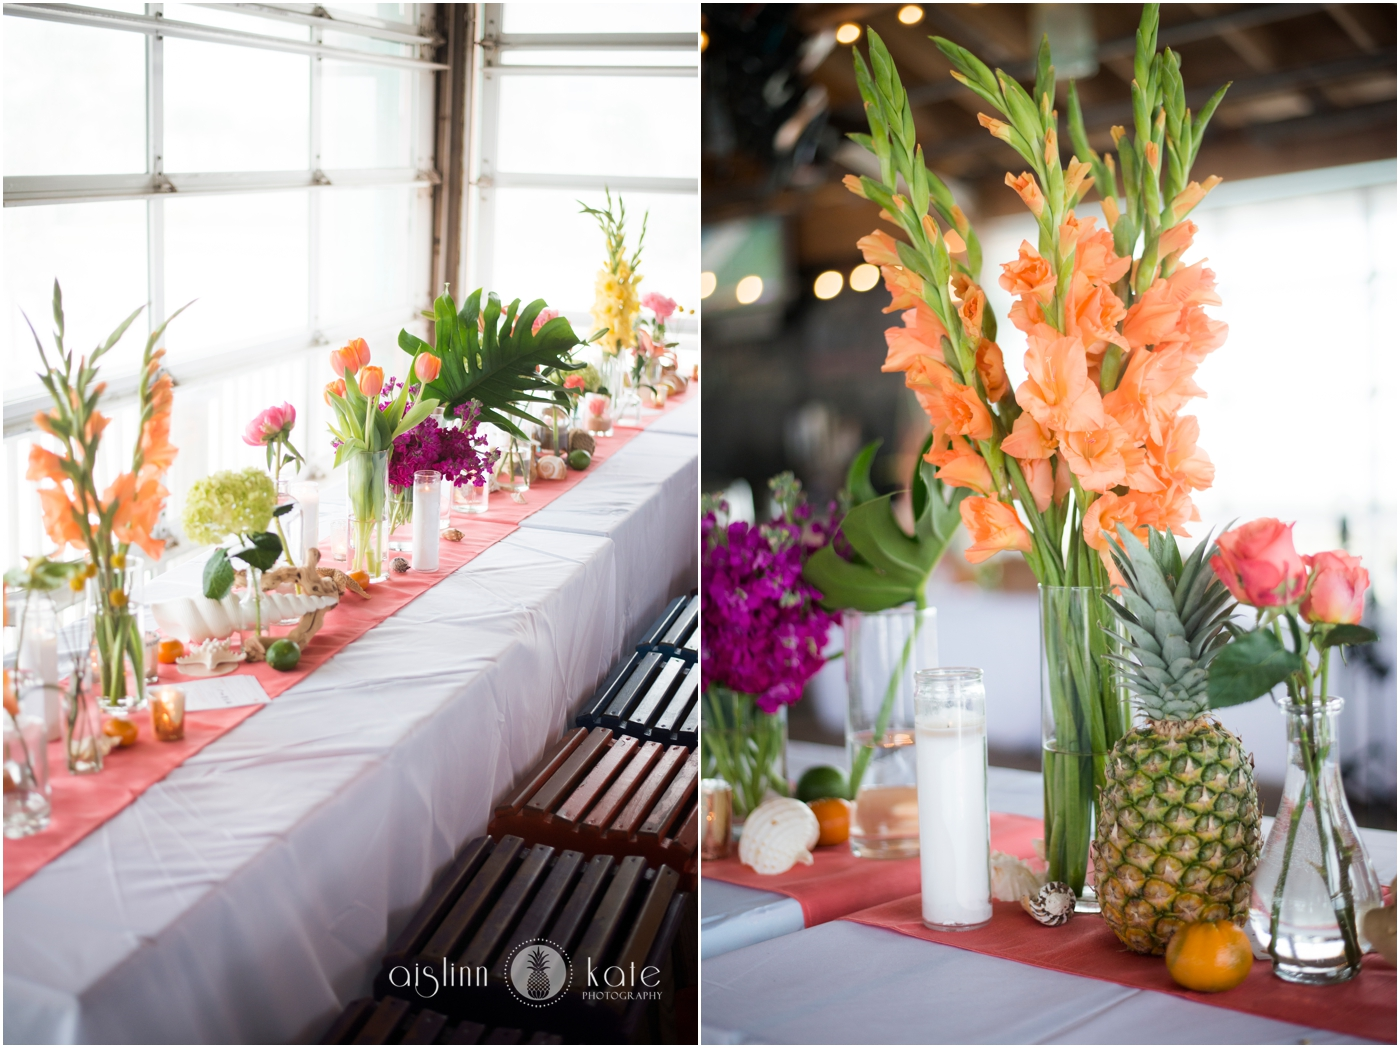 Margaritaville Beach Hotel  |  Victoria + Chris